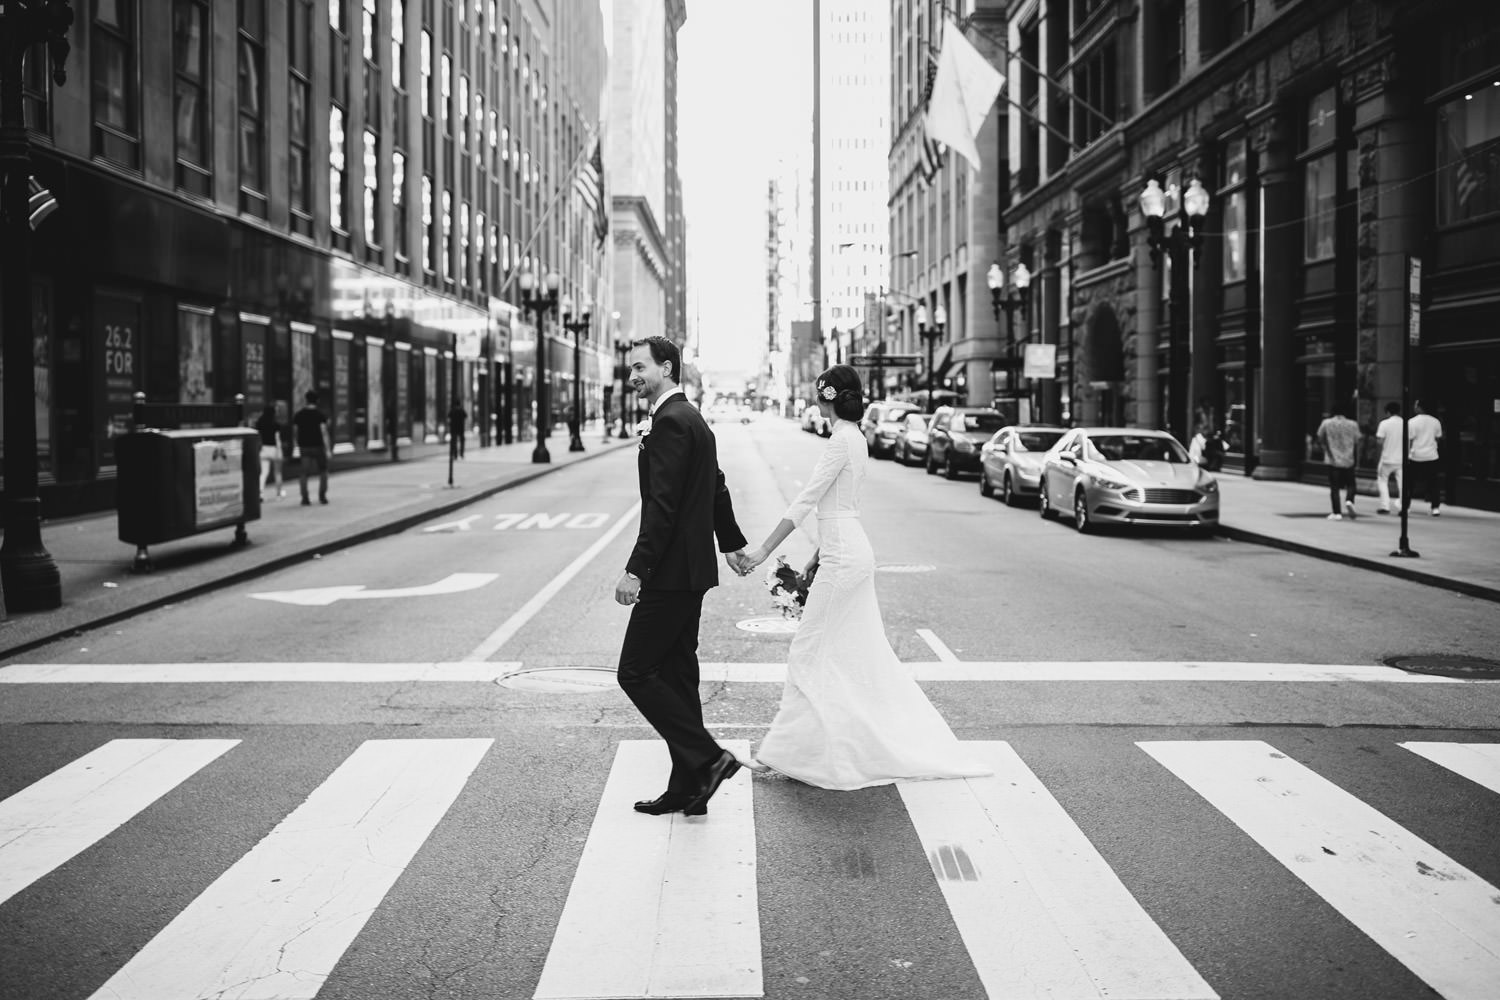 Bride and groom walk together down the street in Chicago downtown during their wedding day